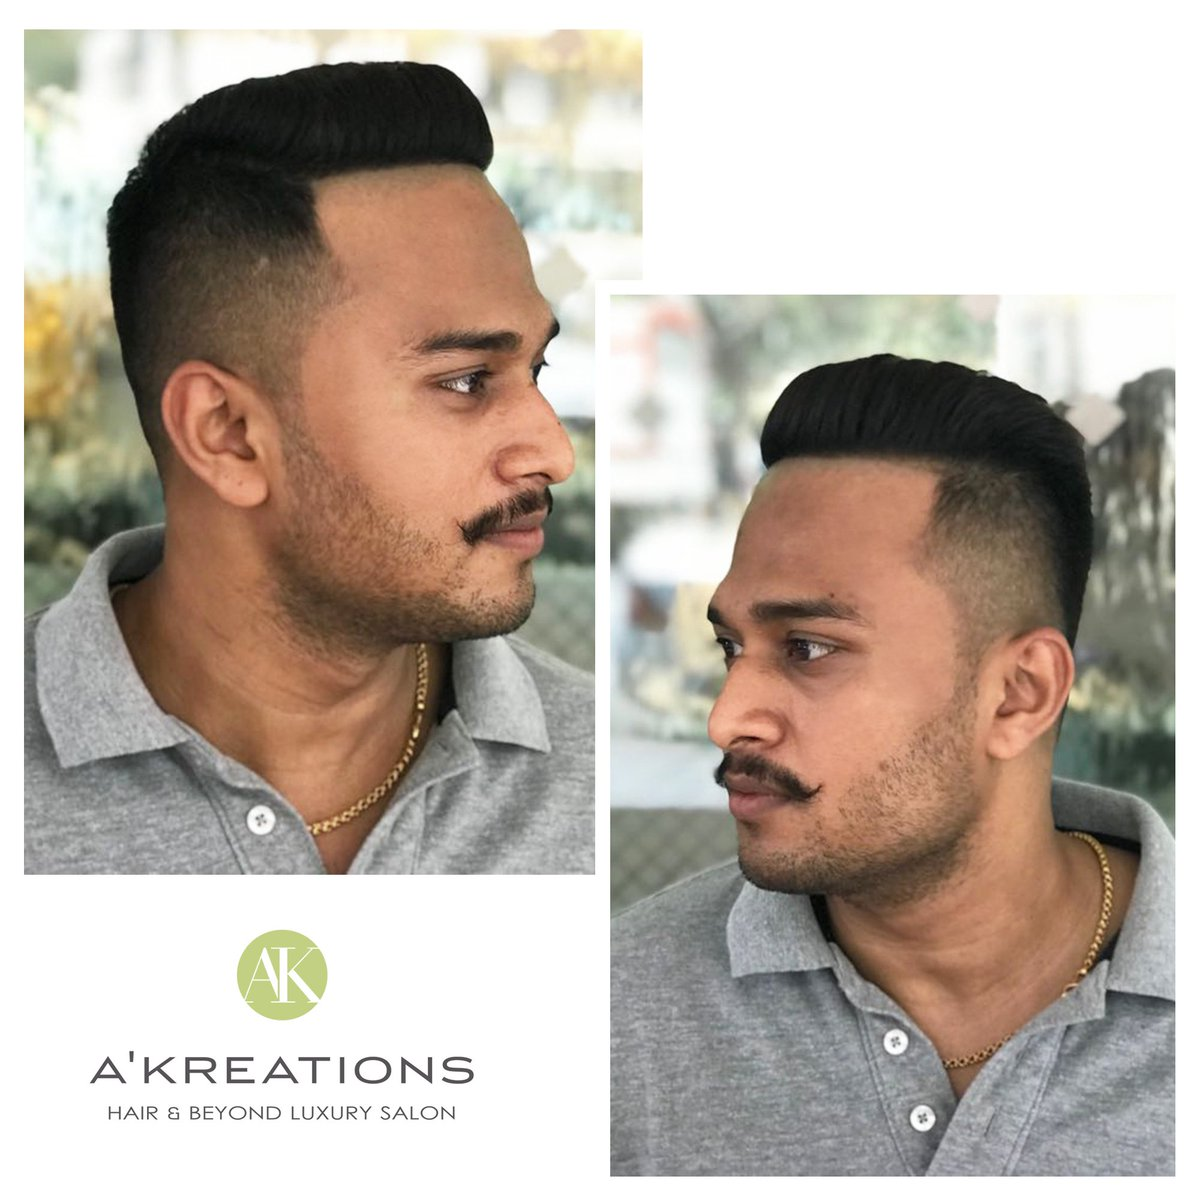 Akreations On Twitter Fade Haircuts Are Cool And Have Been A